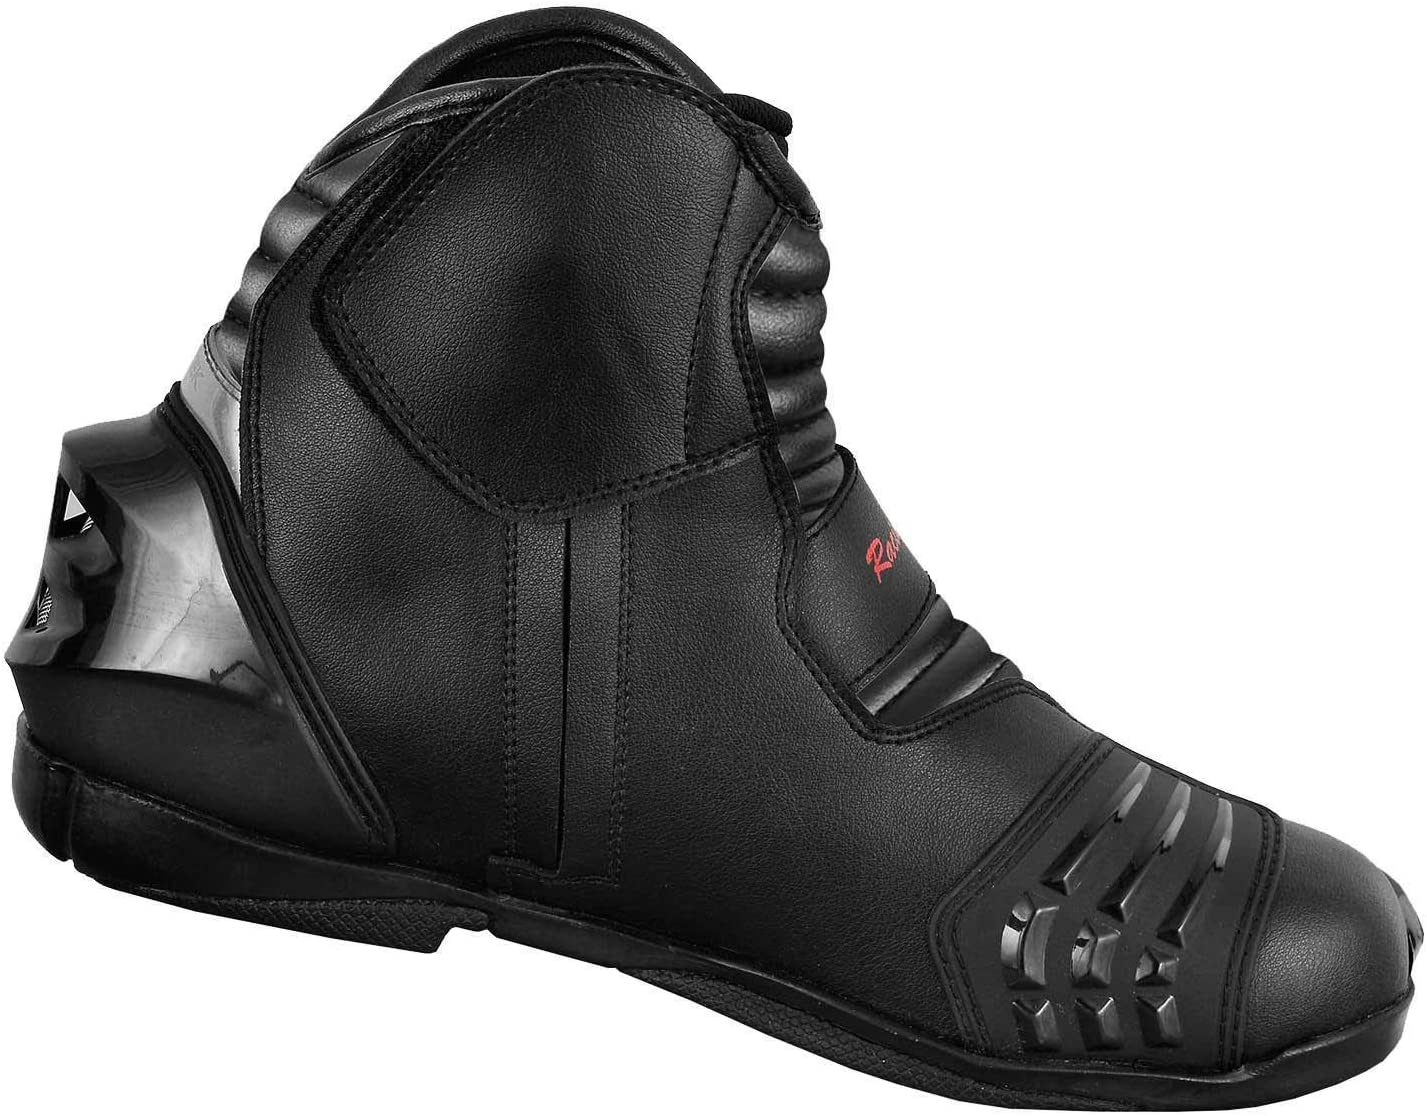 Red /& Black UK 9//EU 43 PROFIRST Nextek Genuine Leather Motorbike Armoured Boots Motorcycle Short Ankle Protection Boot Shoes Anti Slip Racing Sports Reflector